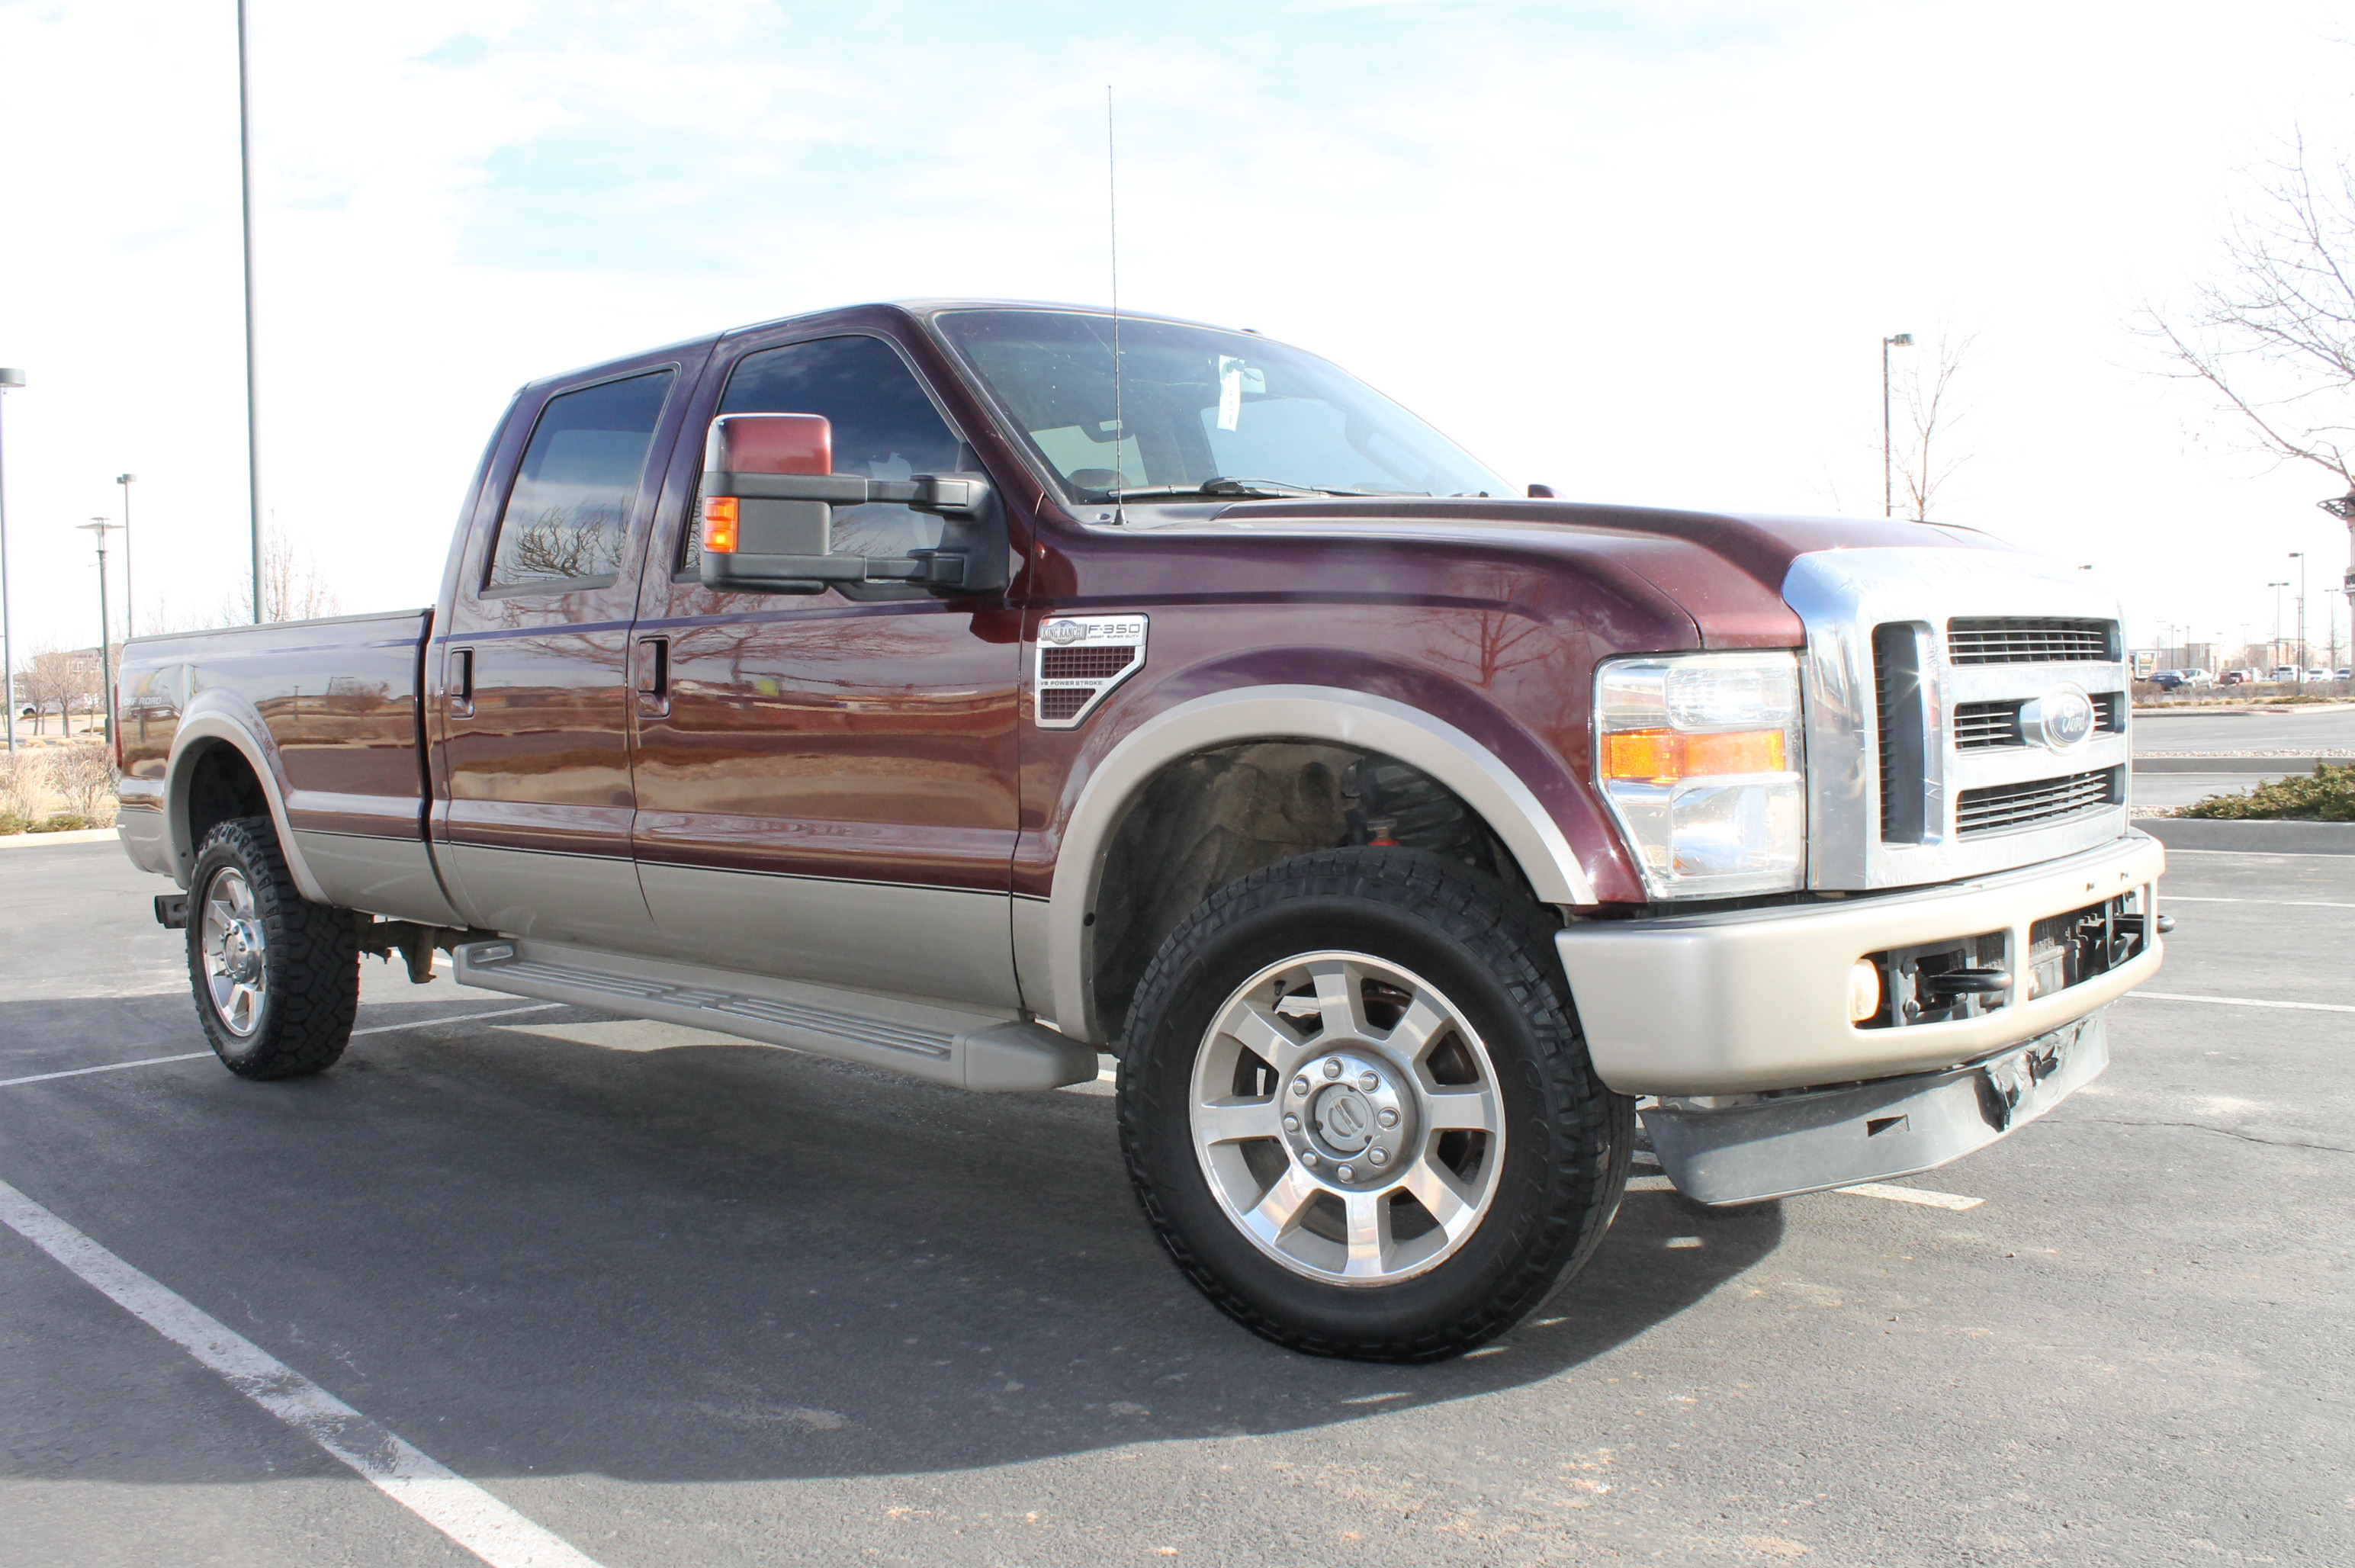 2010 ford f 350 king ranch crew cab turbo diesel long bed 6 4l diesel engine sold. Black Bedroom Furniture Sets. Home Design Ideas